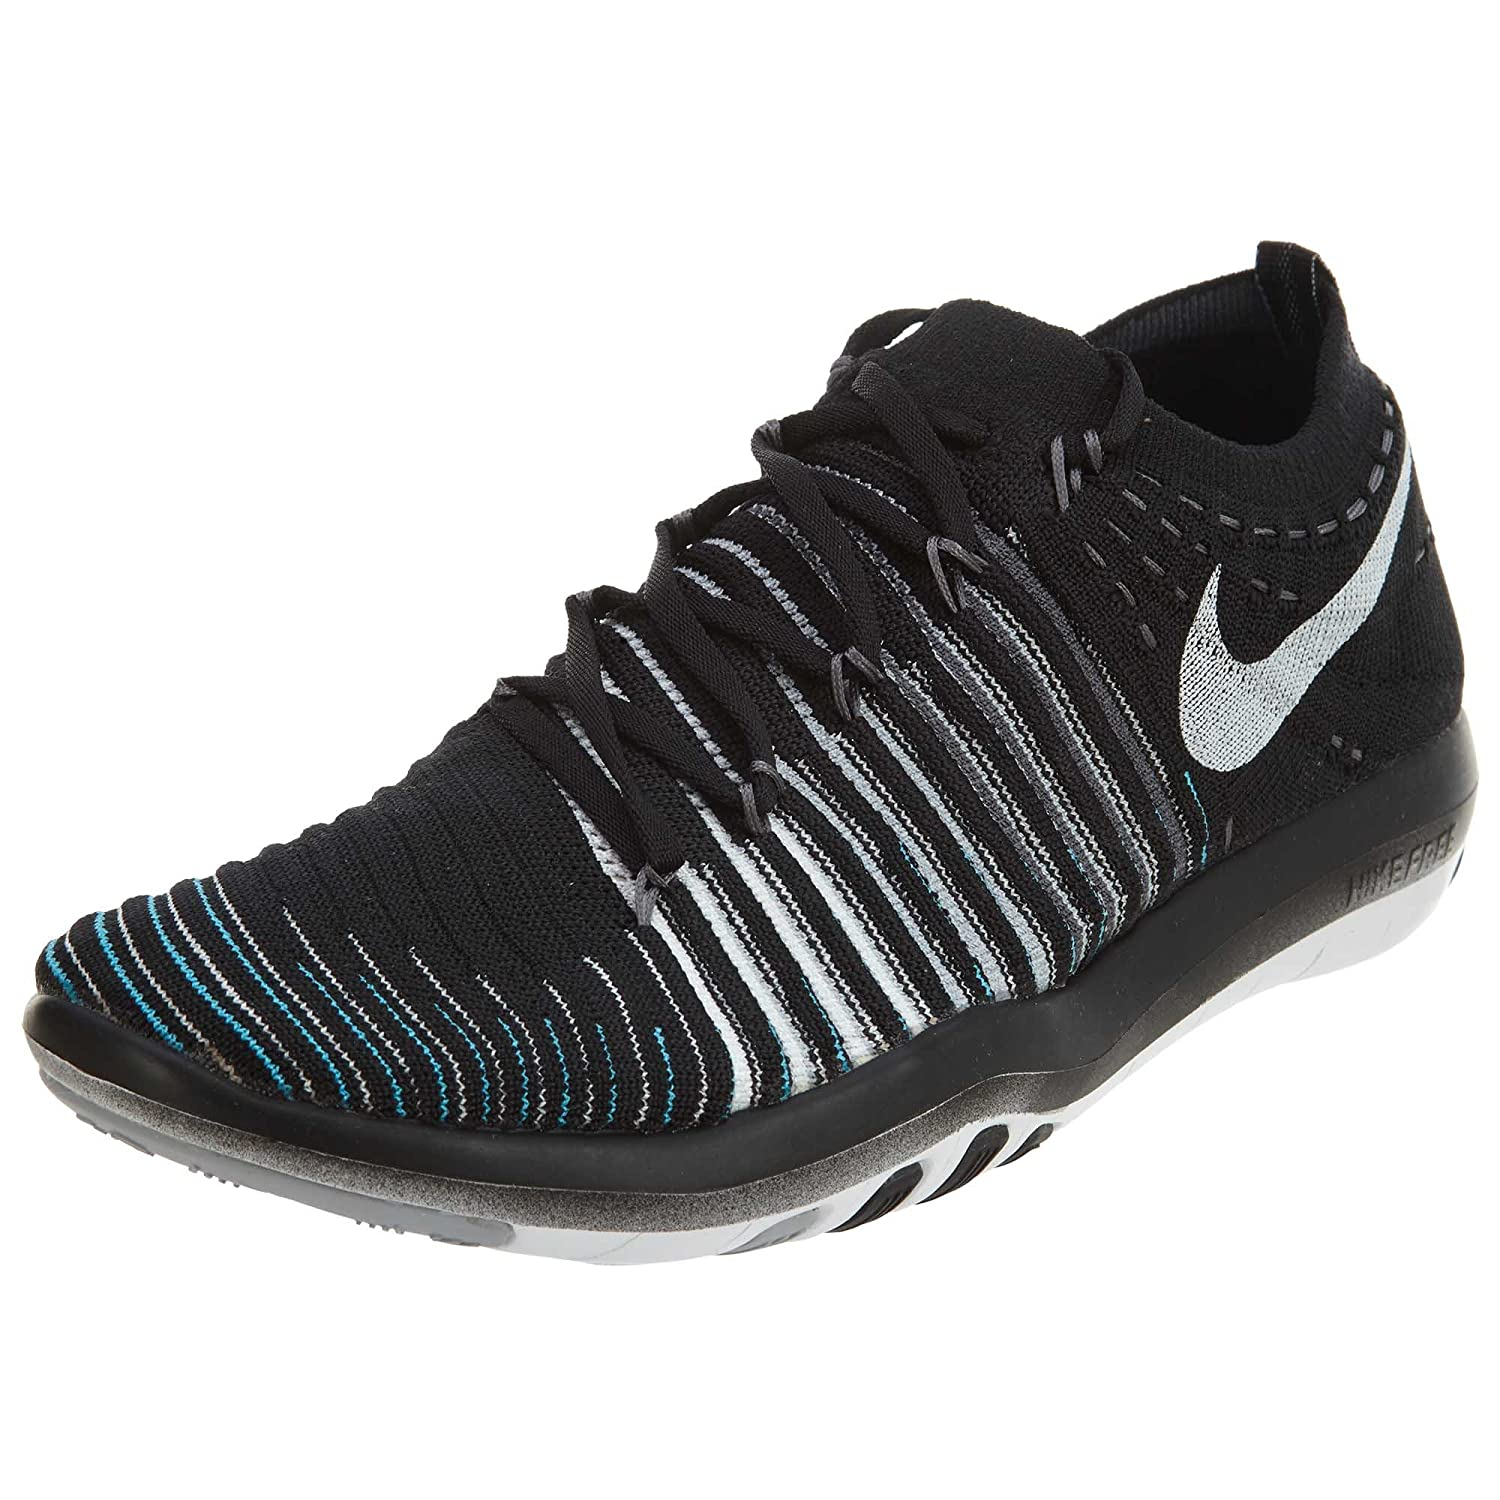 Nike Free Transform Flyknit Womens Running Trainers 833410 Sneakers Shoes